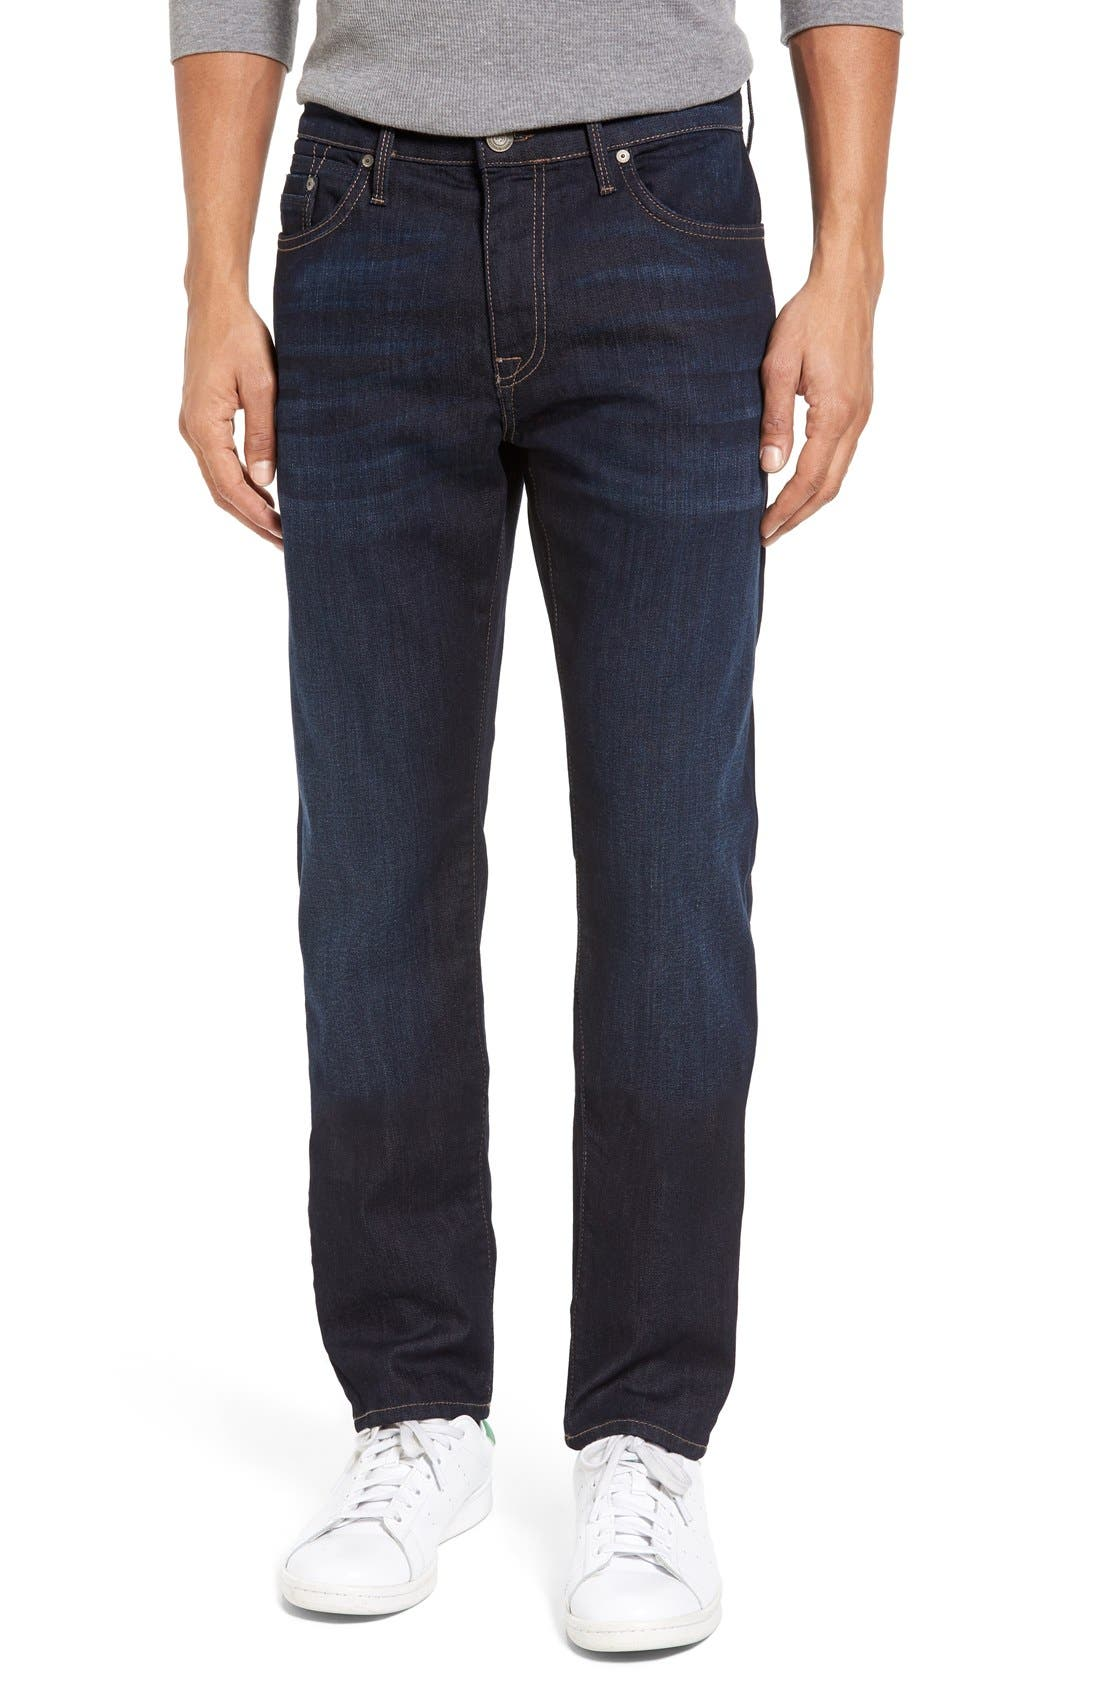 Marcus Slim Straight Leg Jeans,                             Main thumbnail 1, color,                             Rinse Brushed Williamsburg